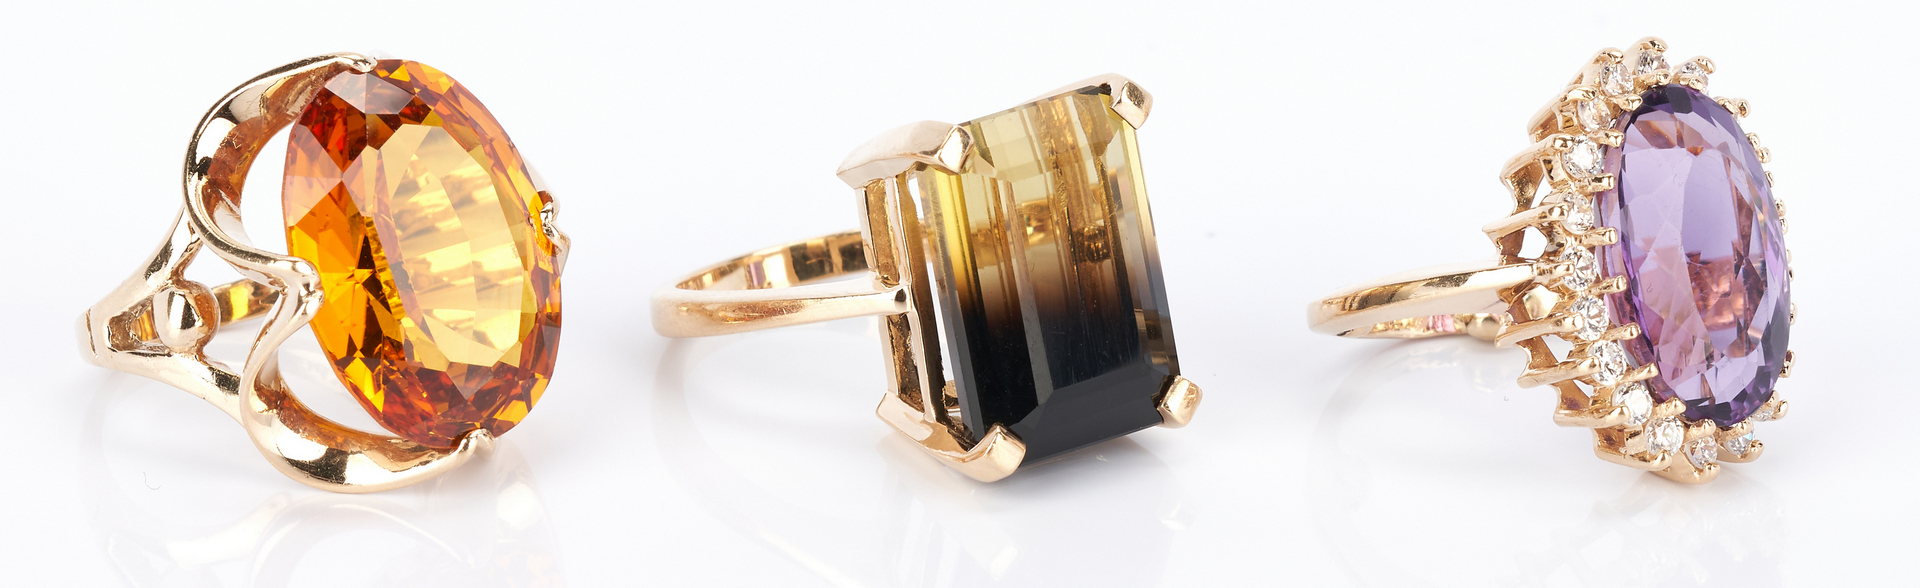 Lot 733: 3 Ladies Gold and Gemstone Rings